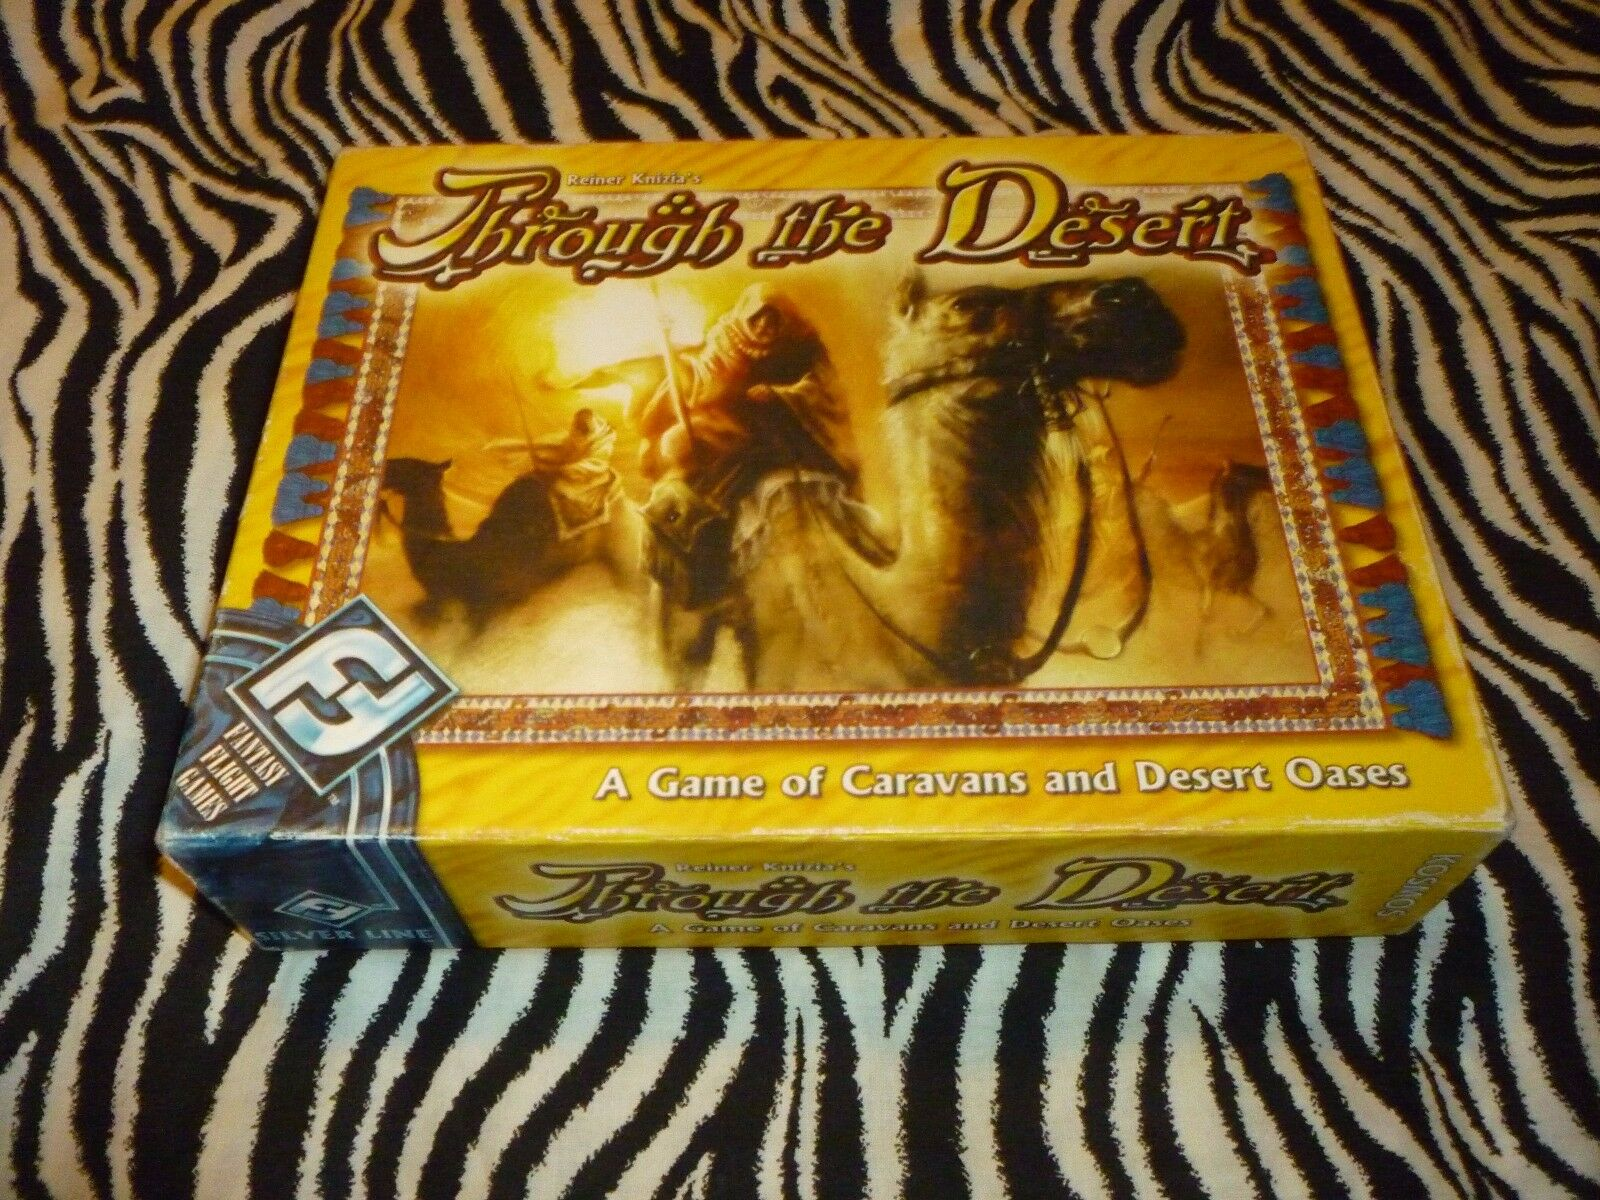 Through The Desert Board Game - Used But Complete - Very Good Condition